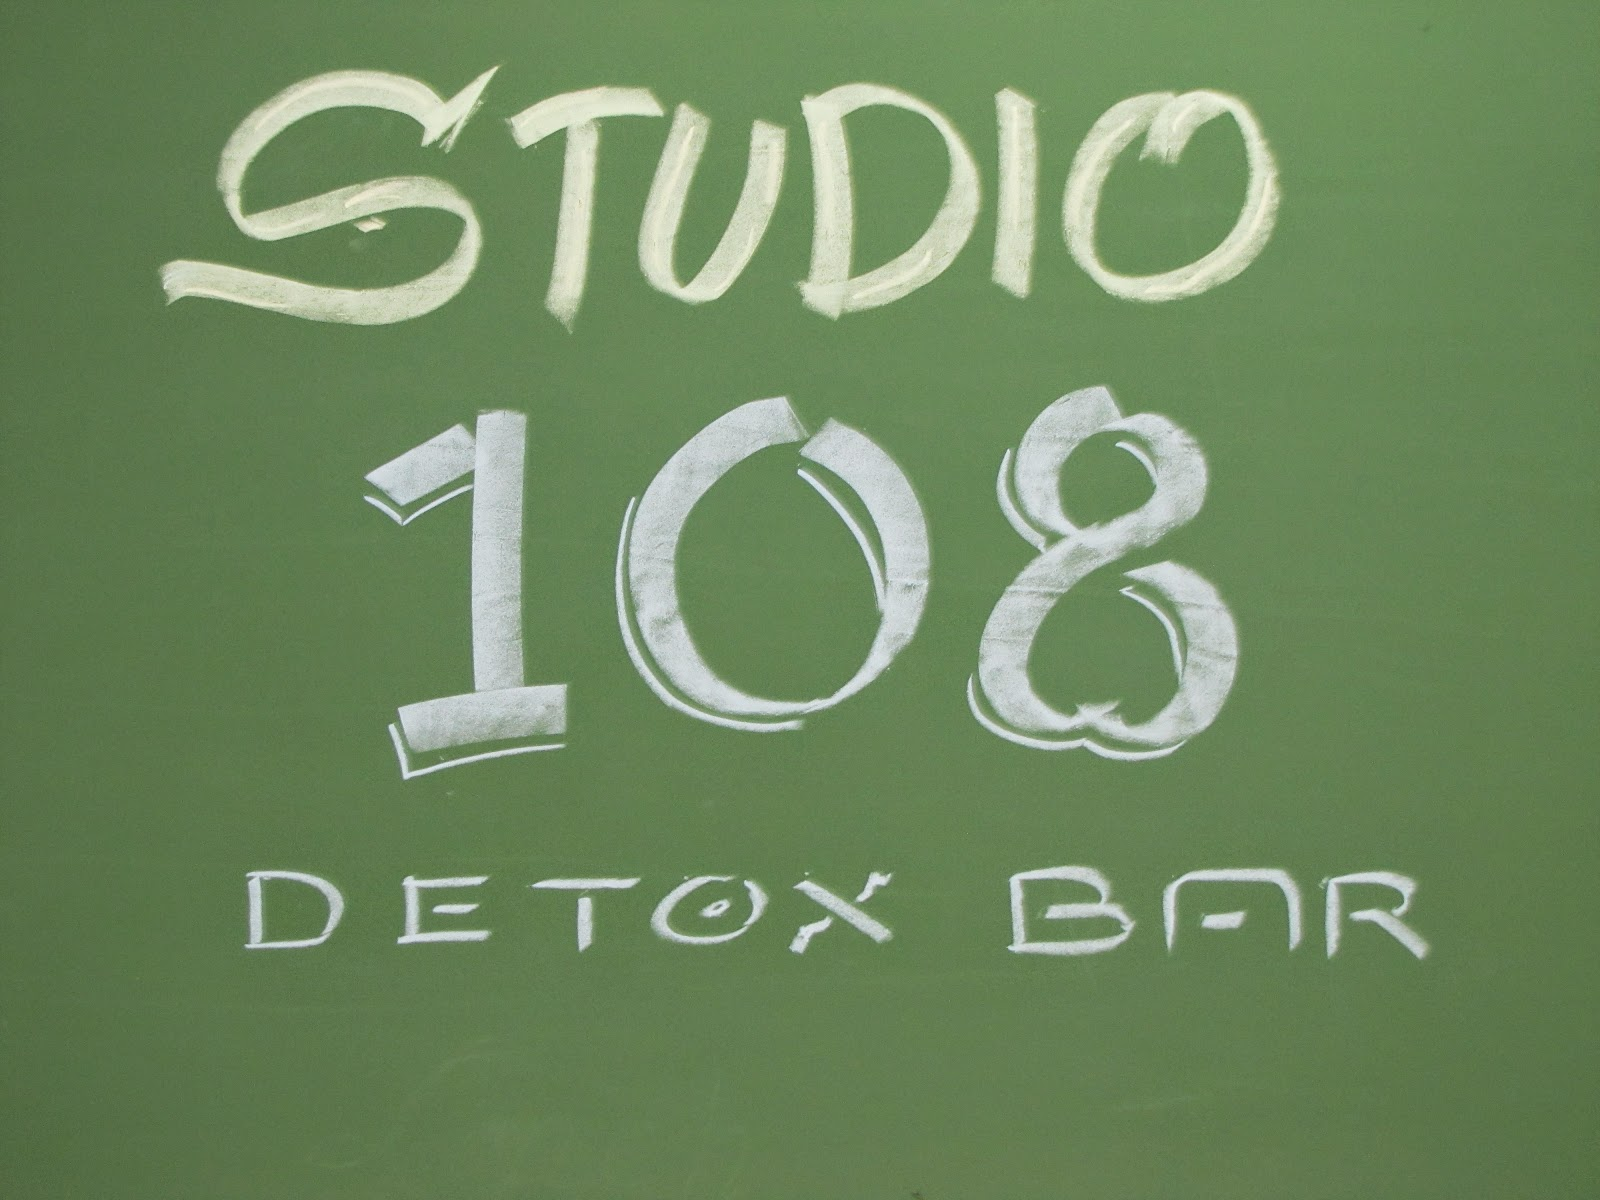 FTW! Blog, Studio 108, Detox Bar, #032yoga, #cebuyoga #yoga032